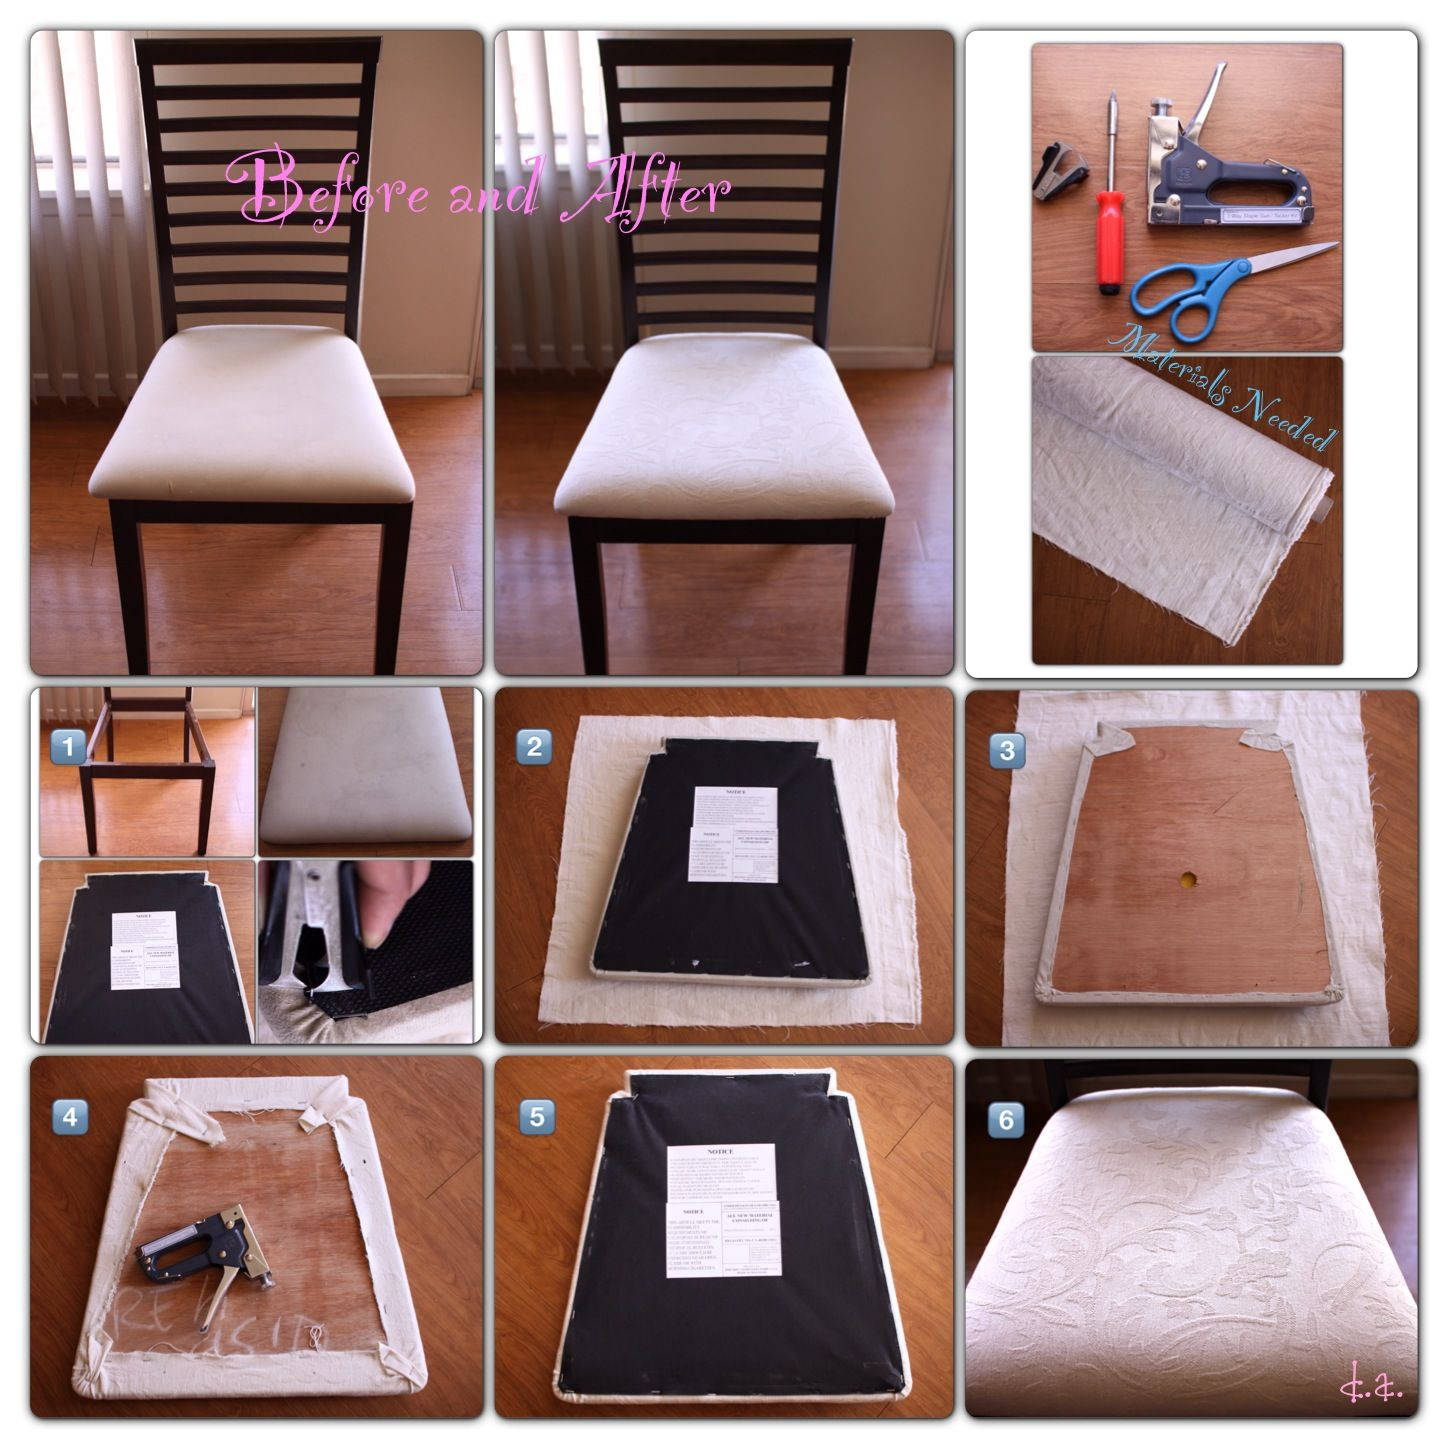 diy how to reupholster a sofa aloworld chairs and sofas for sale reupholstered dining chair this seems easy enough just